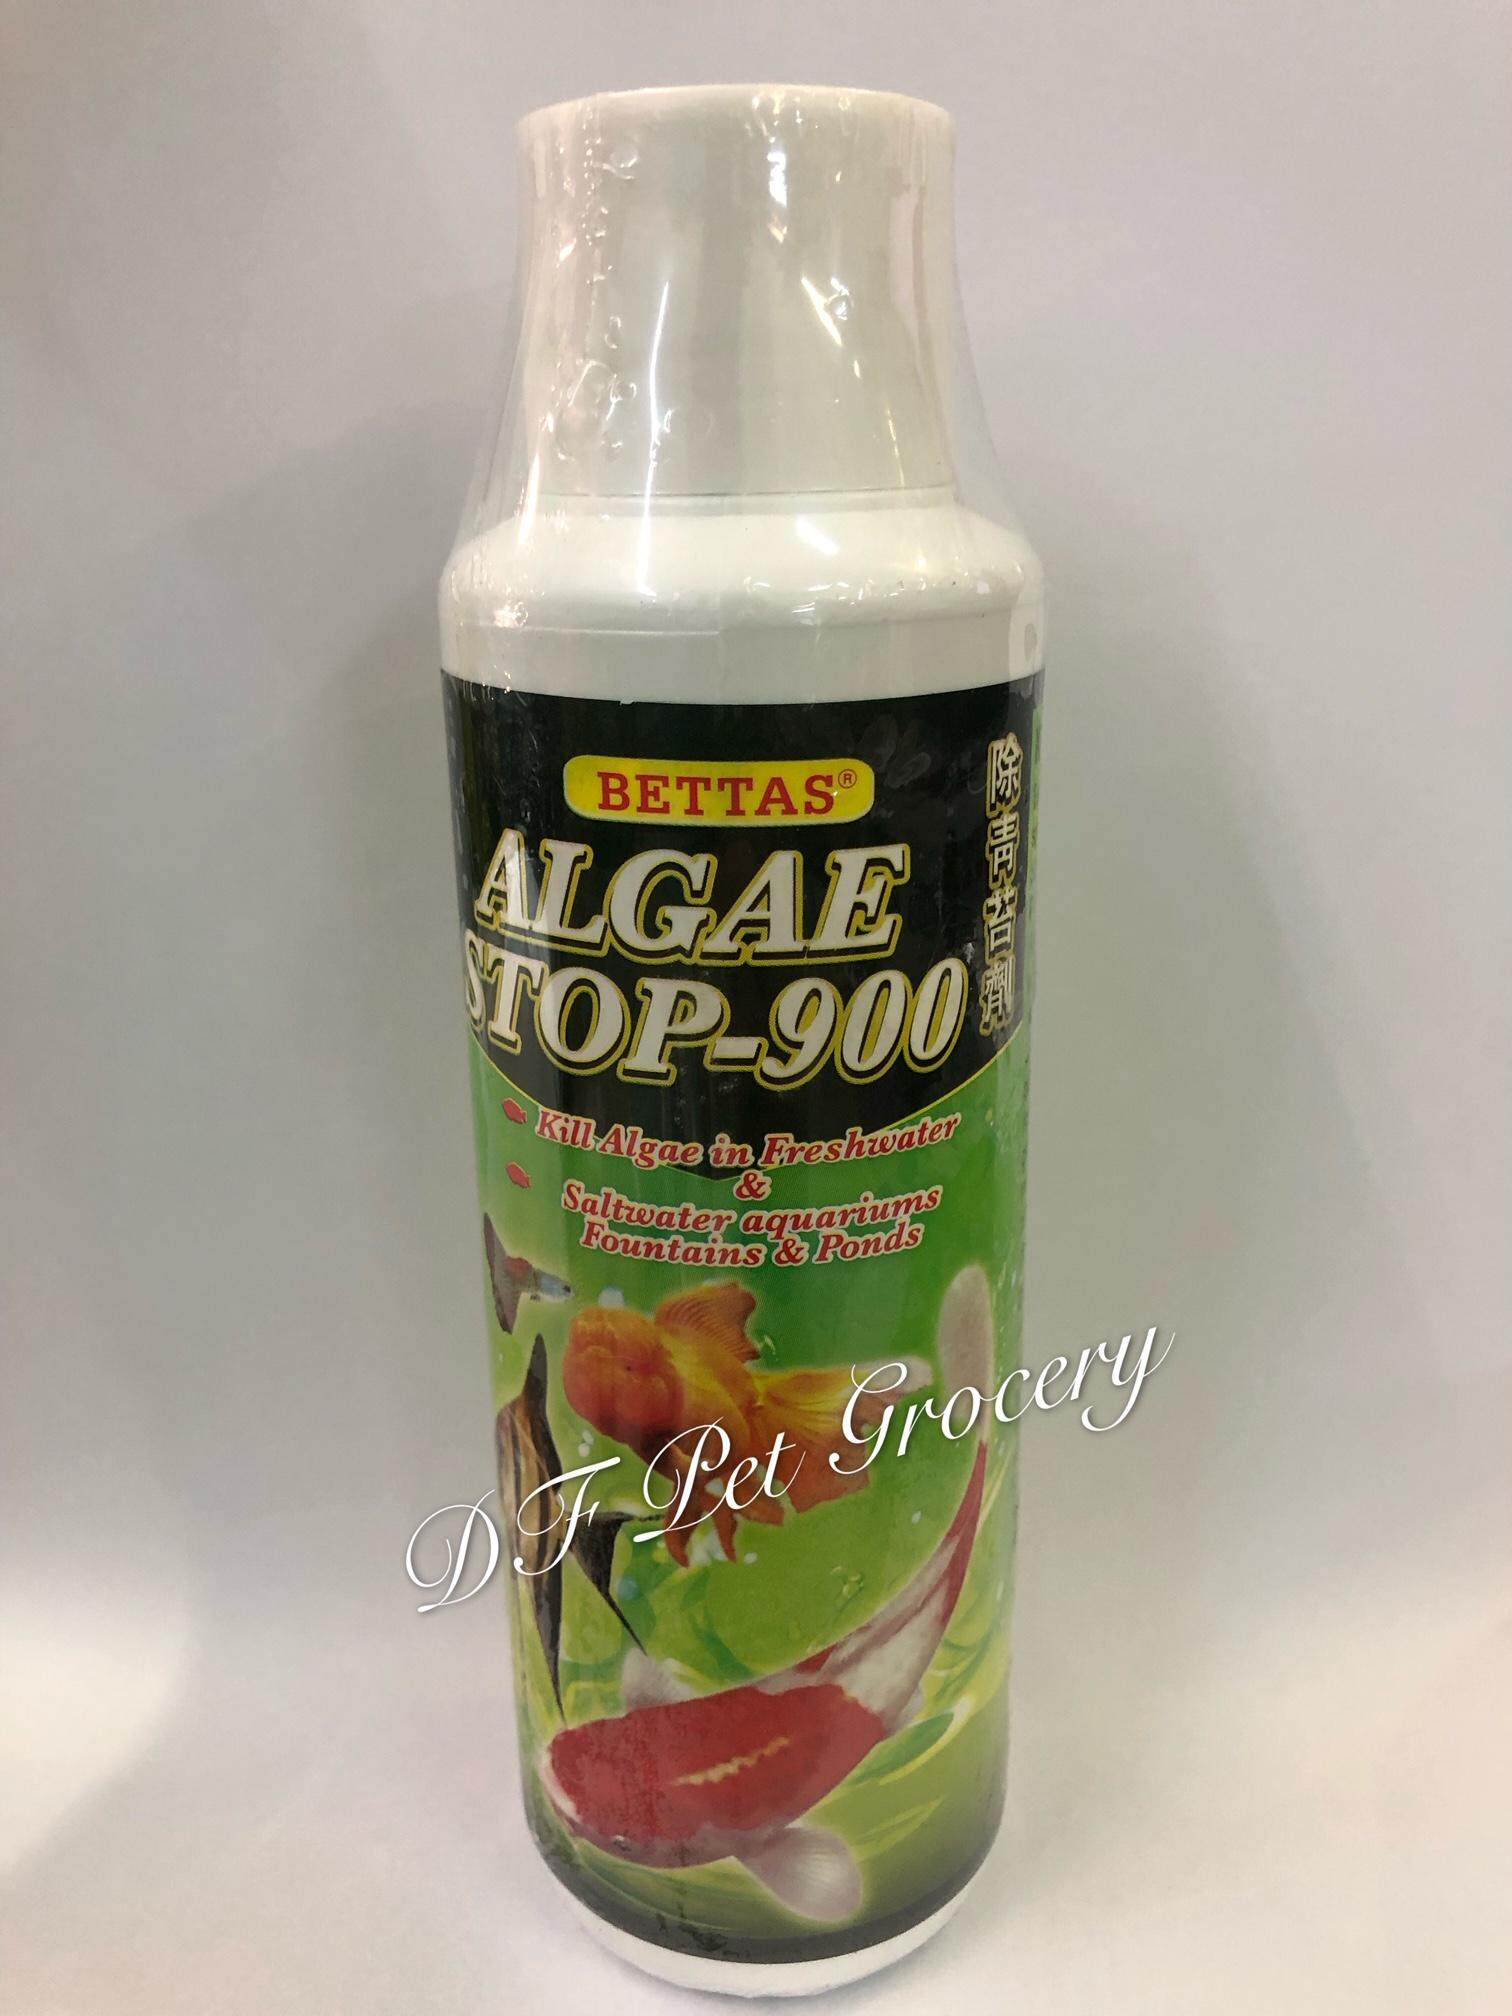 BETTAS Algae Stop-900 除青苔剂 200ml - For Fish